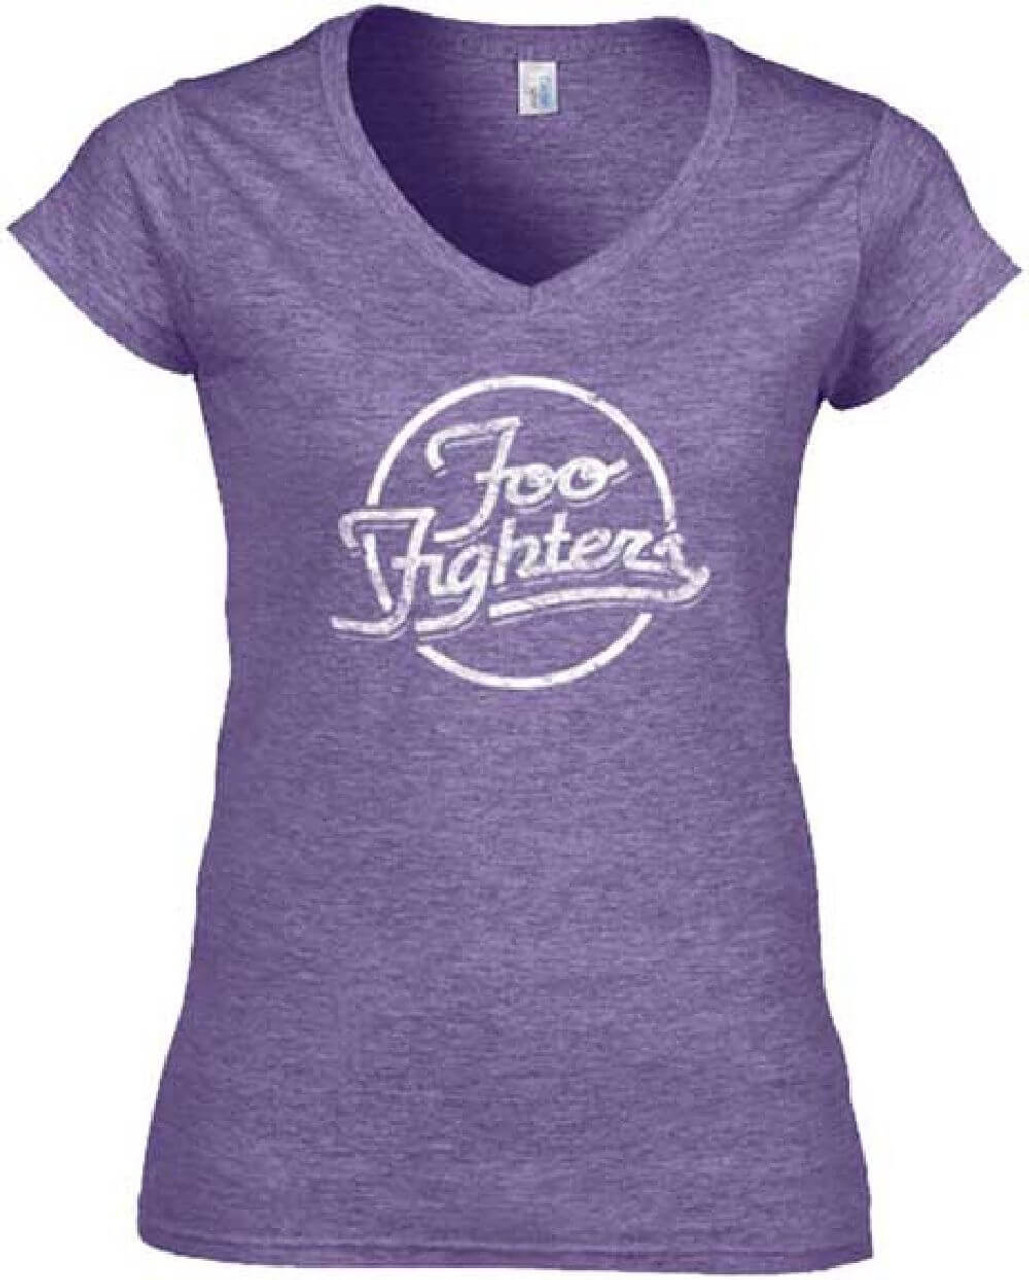 Foo fighters logo women 39 s purple vintage v neck t shirt for Old logo t shirts